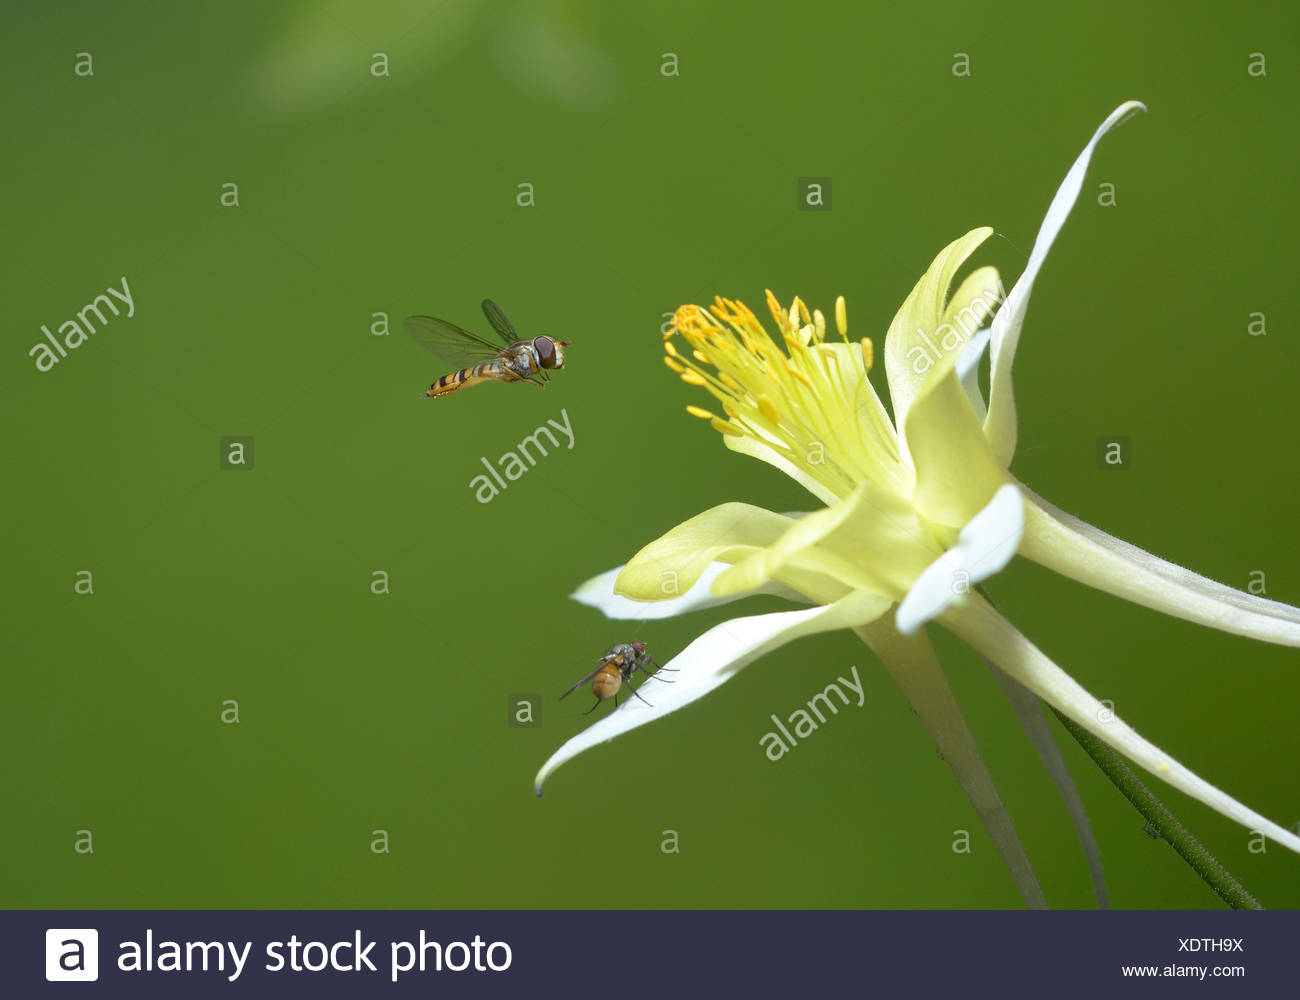 Hoverfly in flight - Stock Image